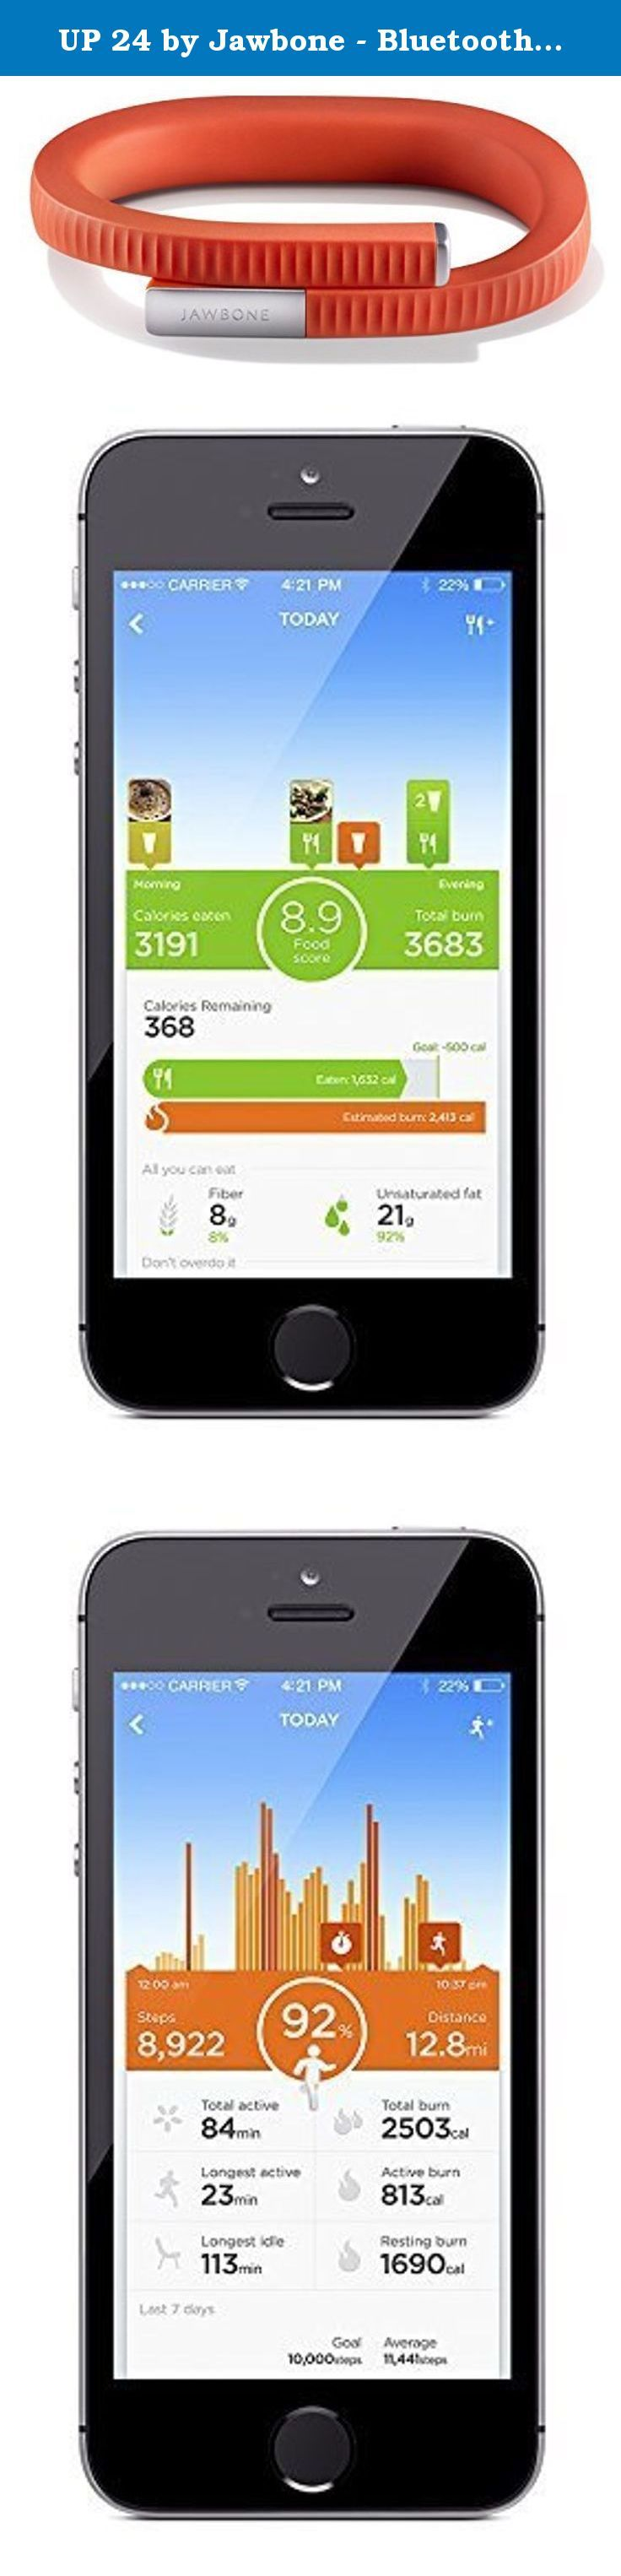 UP 24 by Jawbone - Bluetooth Enabled - Medium - Persimmon (Certified Refurbished). UP24 is compatible with many phones equipped with Bluetooth 4.0 and running Android 4.3 (Jelly Bean) or later, and iOS 6.0 or later. Track Sleep including total hours, time to fall asleep, number of wake ups Track Activity including steps, distance, calories burned, active vs. idle time Log what you eat and drink and track nutritional info by taking a photo, scanning a barcode, or searching the UP app…